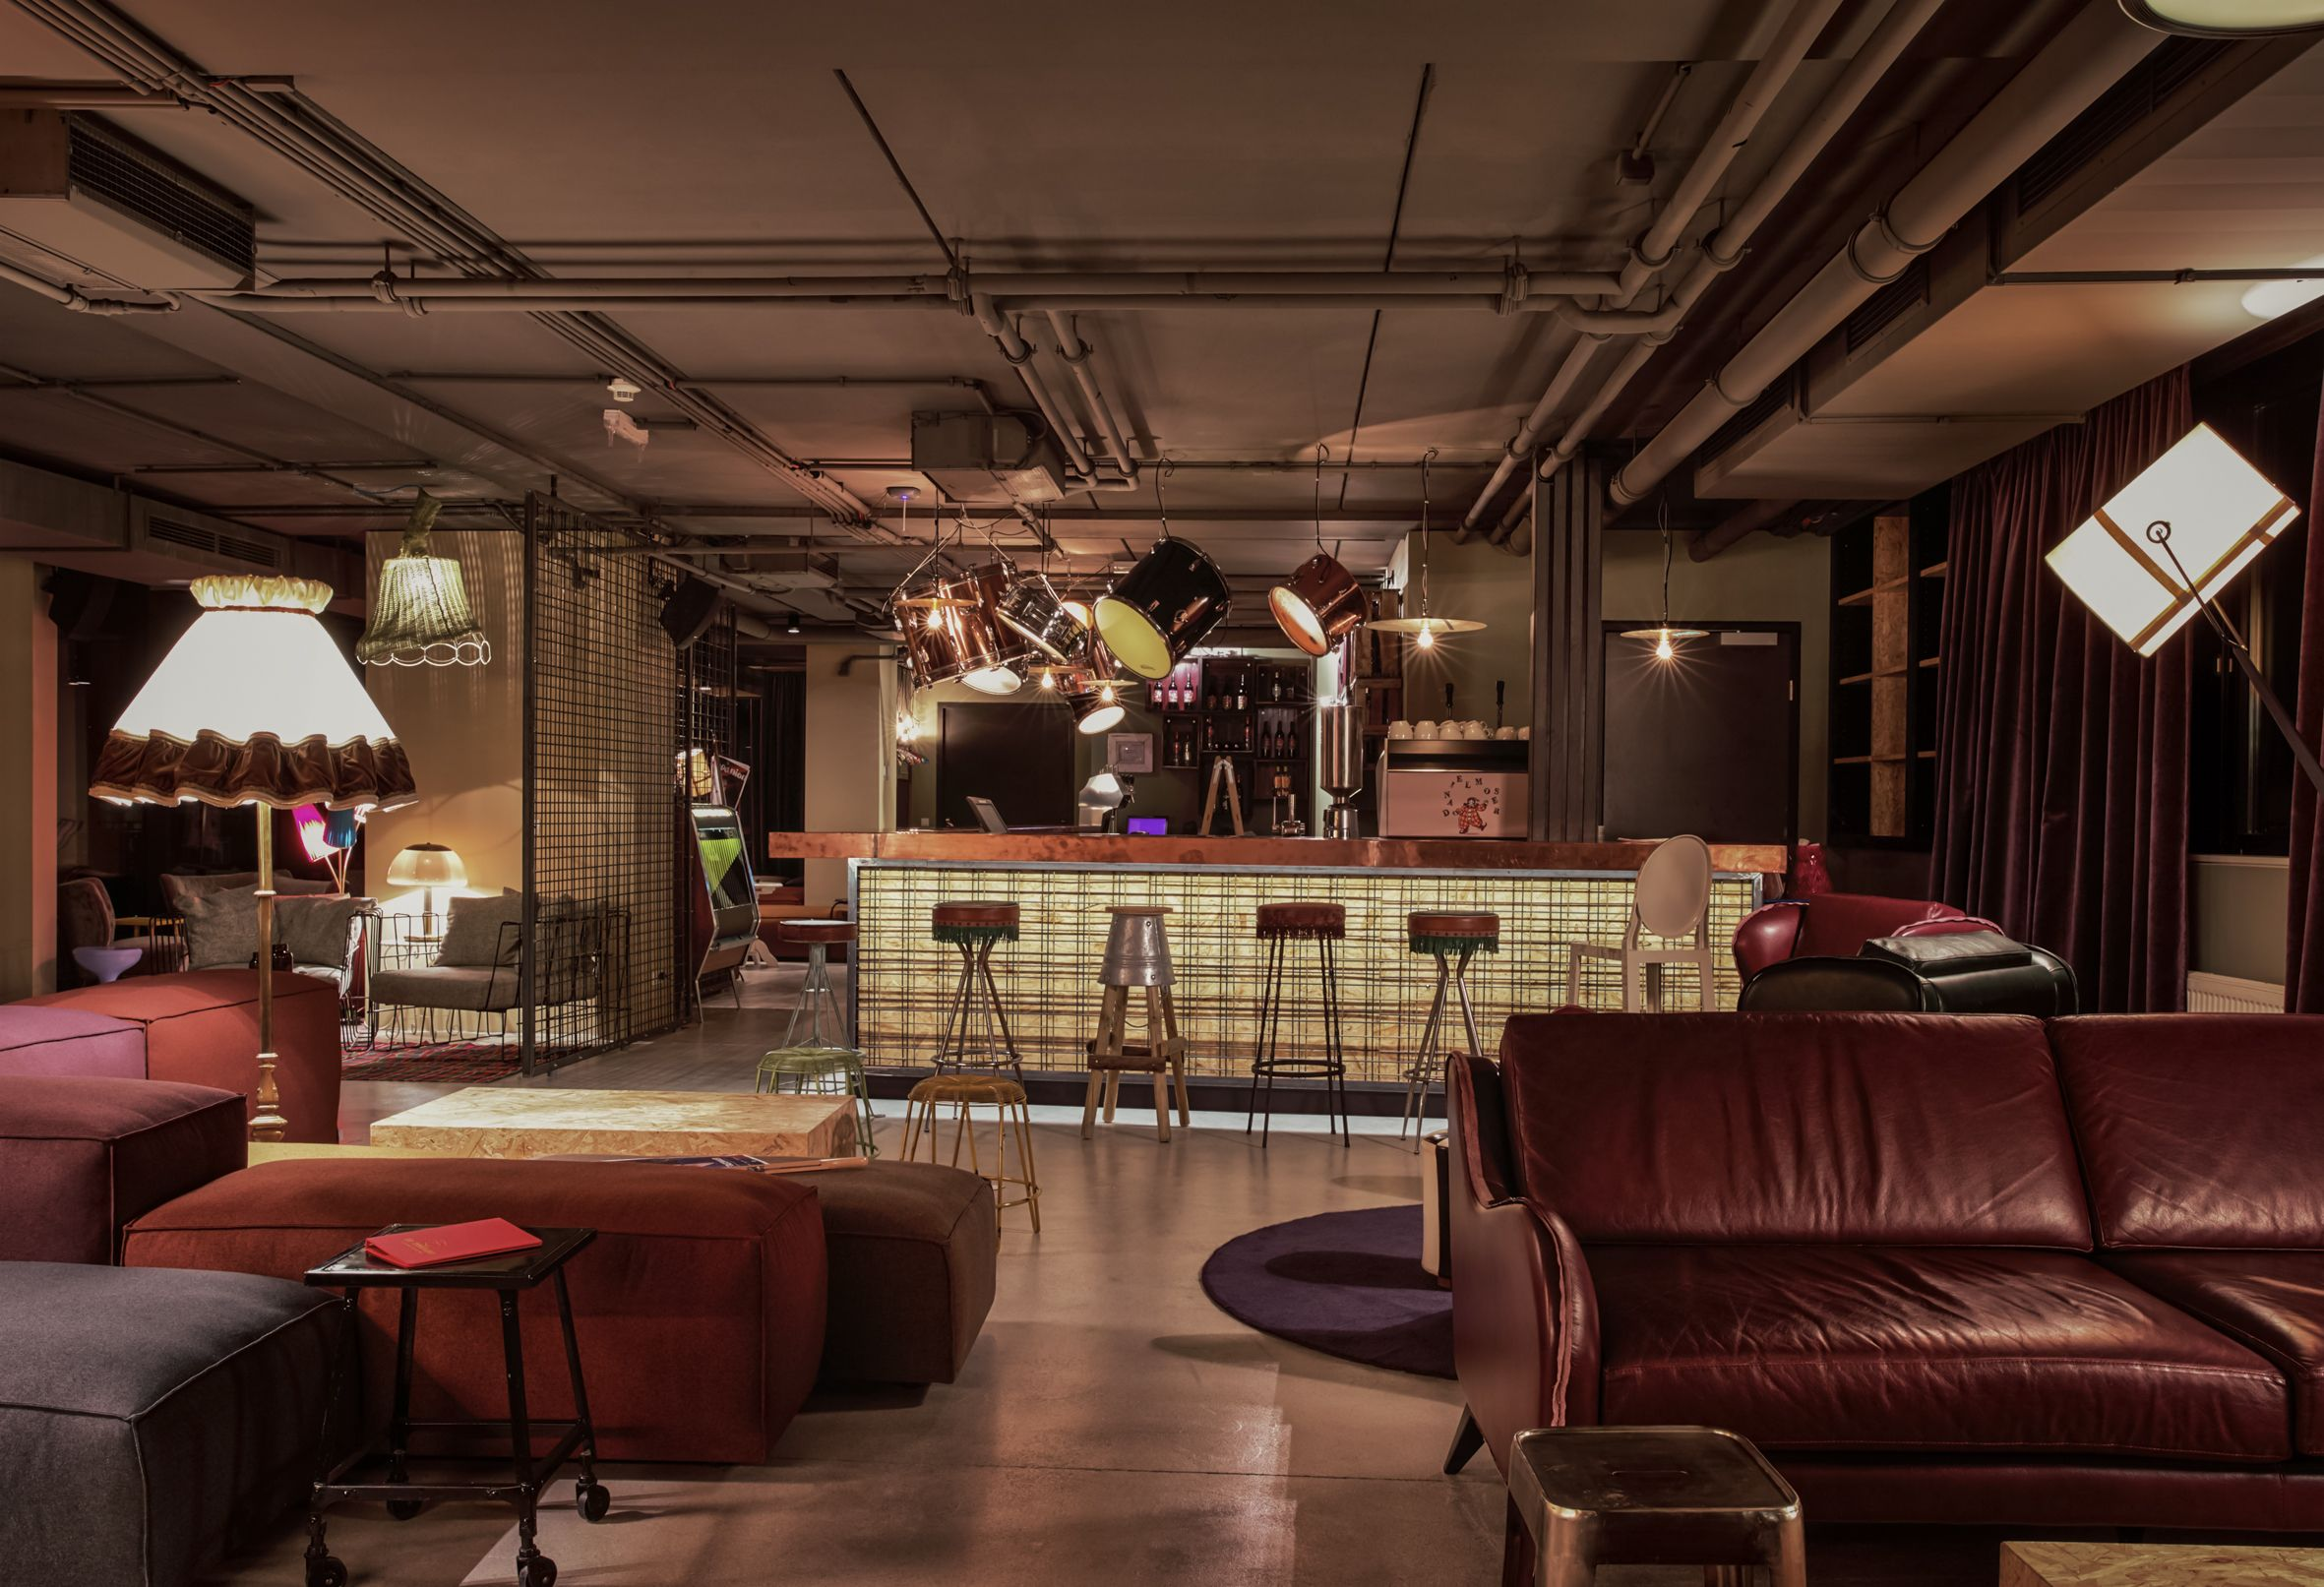 25h hotel dachboden vienna design by dreimeta loft for Wine and design hotel vienna